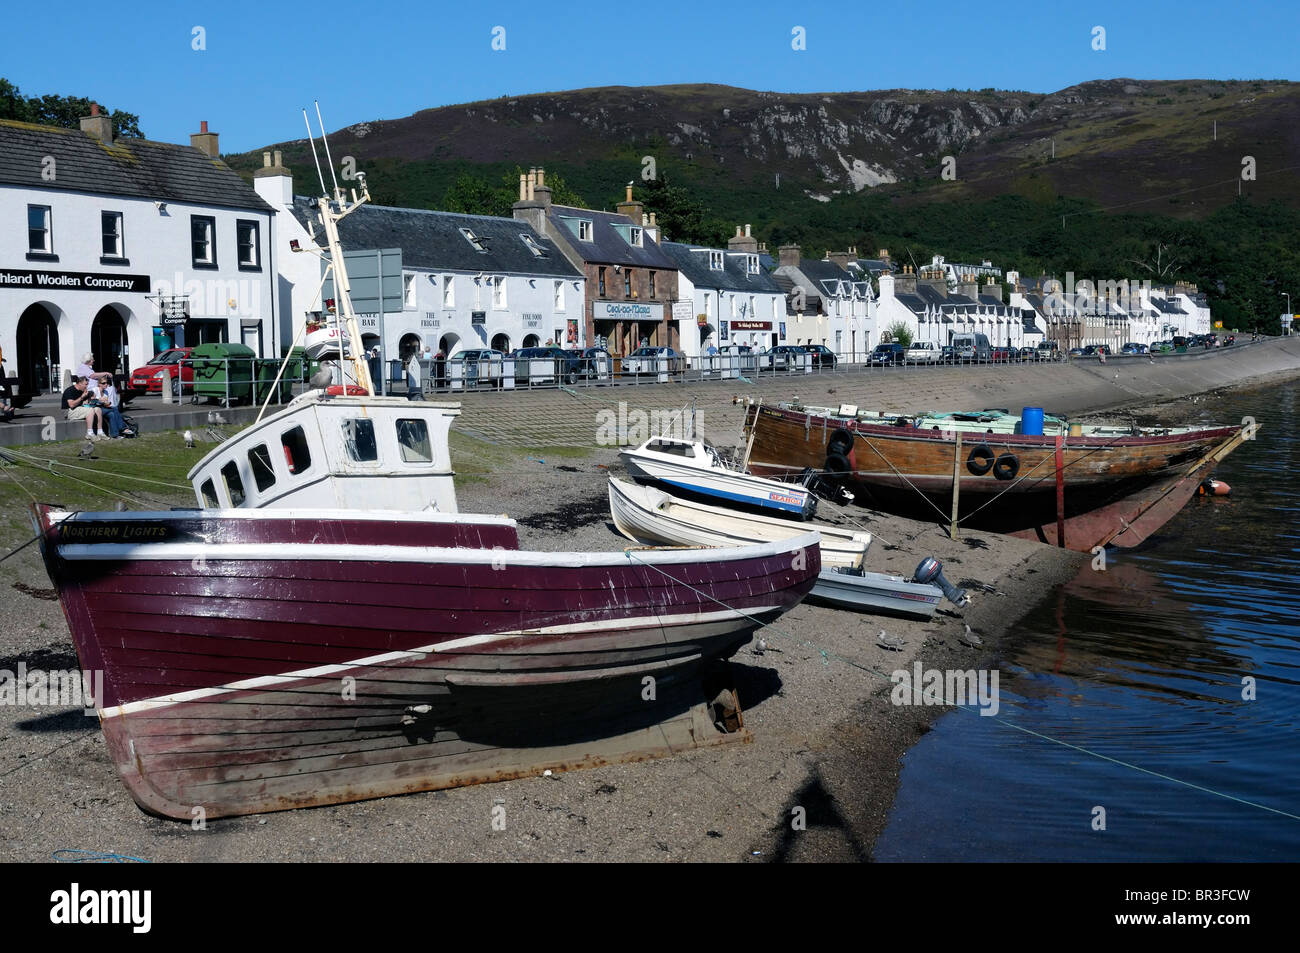 Seafront, shops and boats in Ullapool - Stock Image